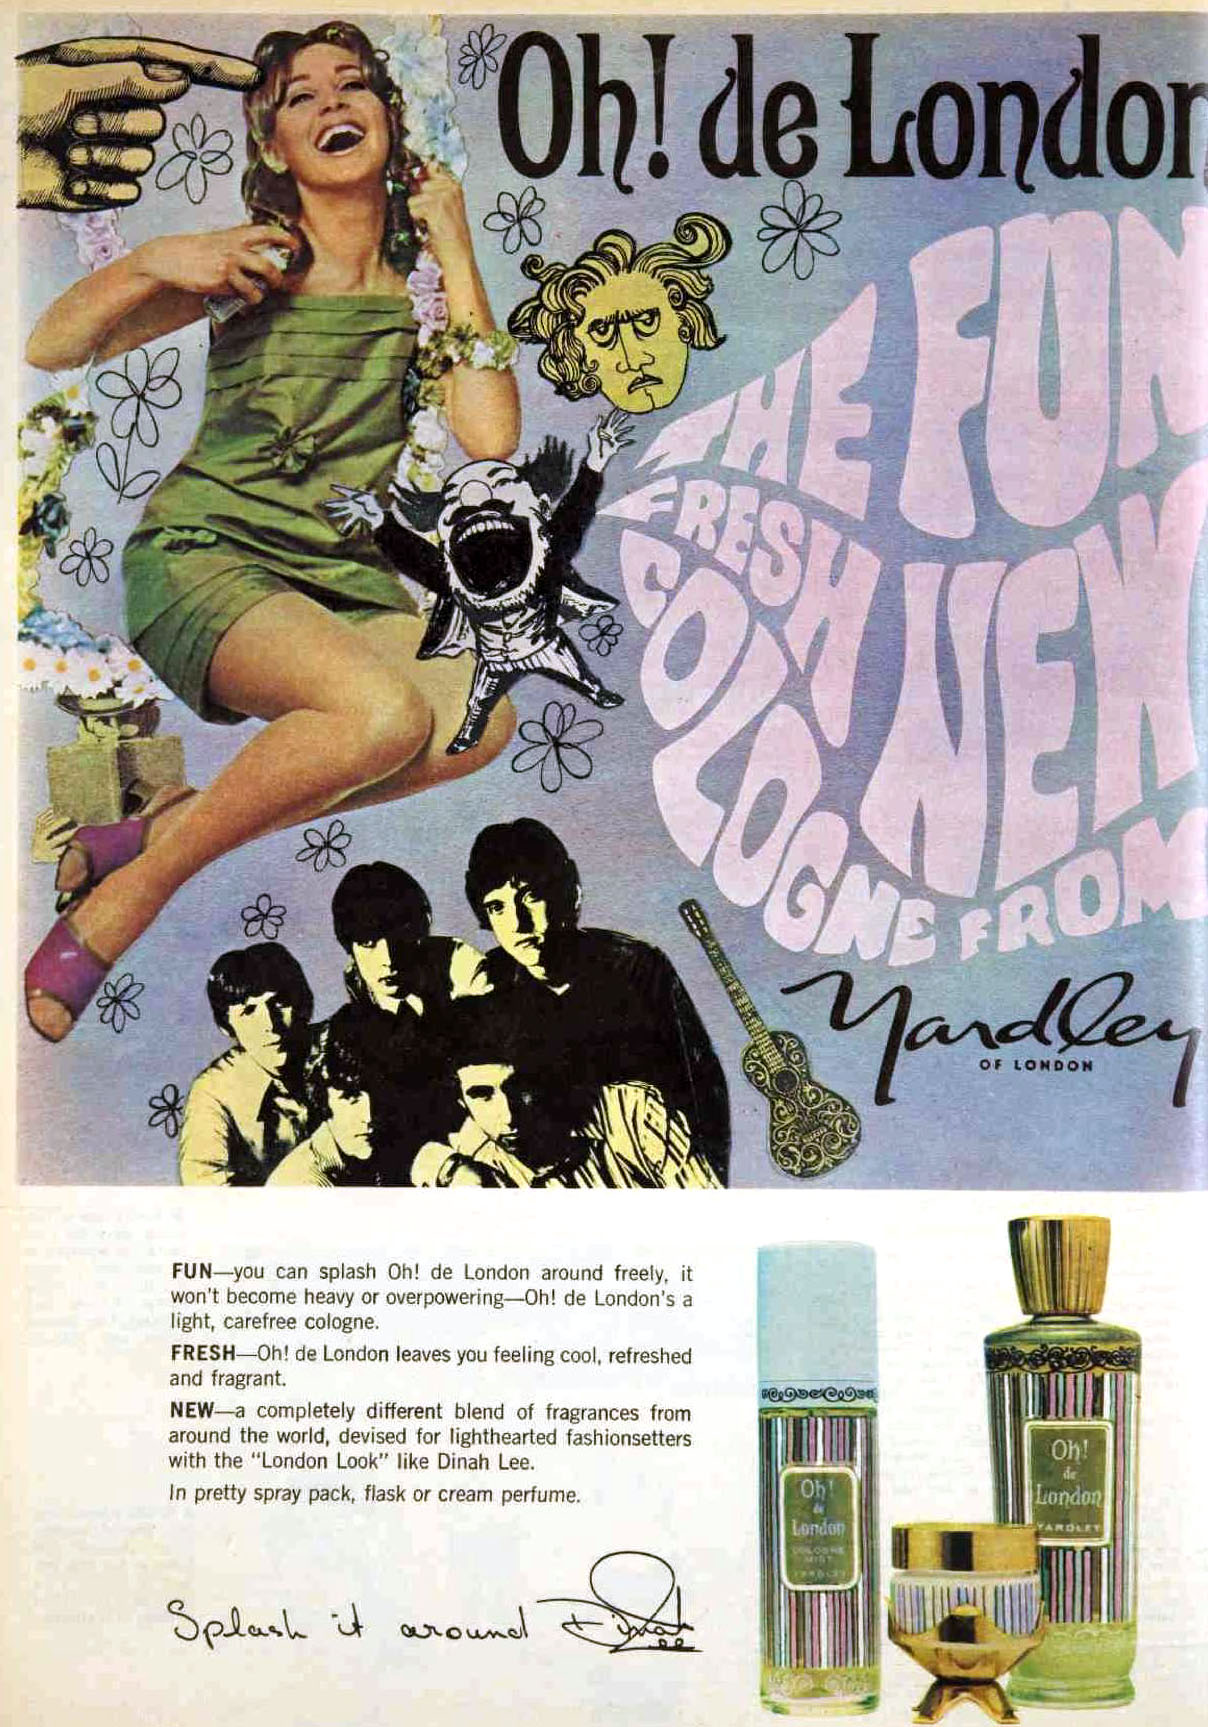 1968 Yardley perfume